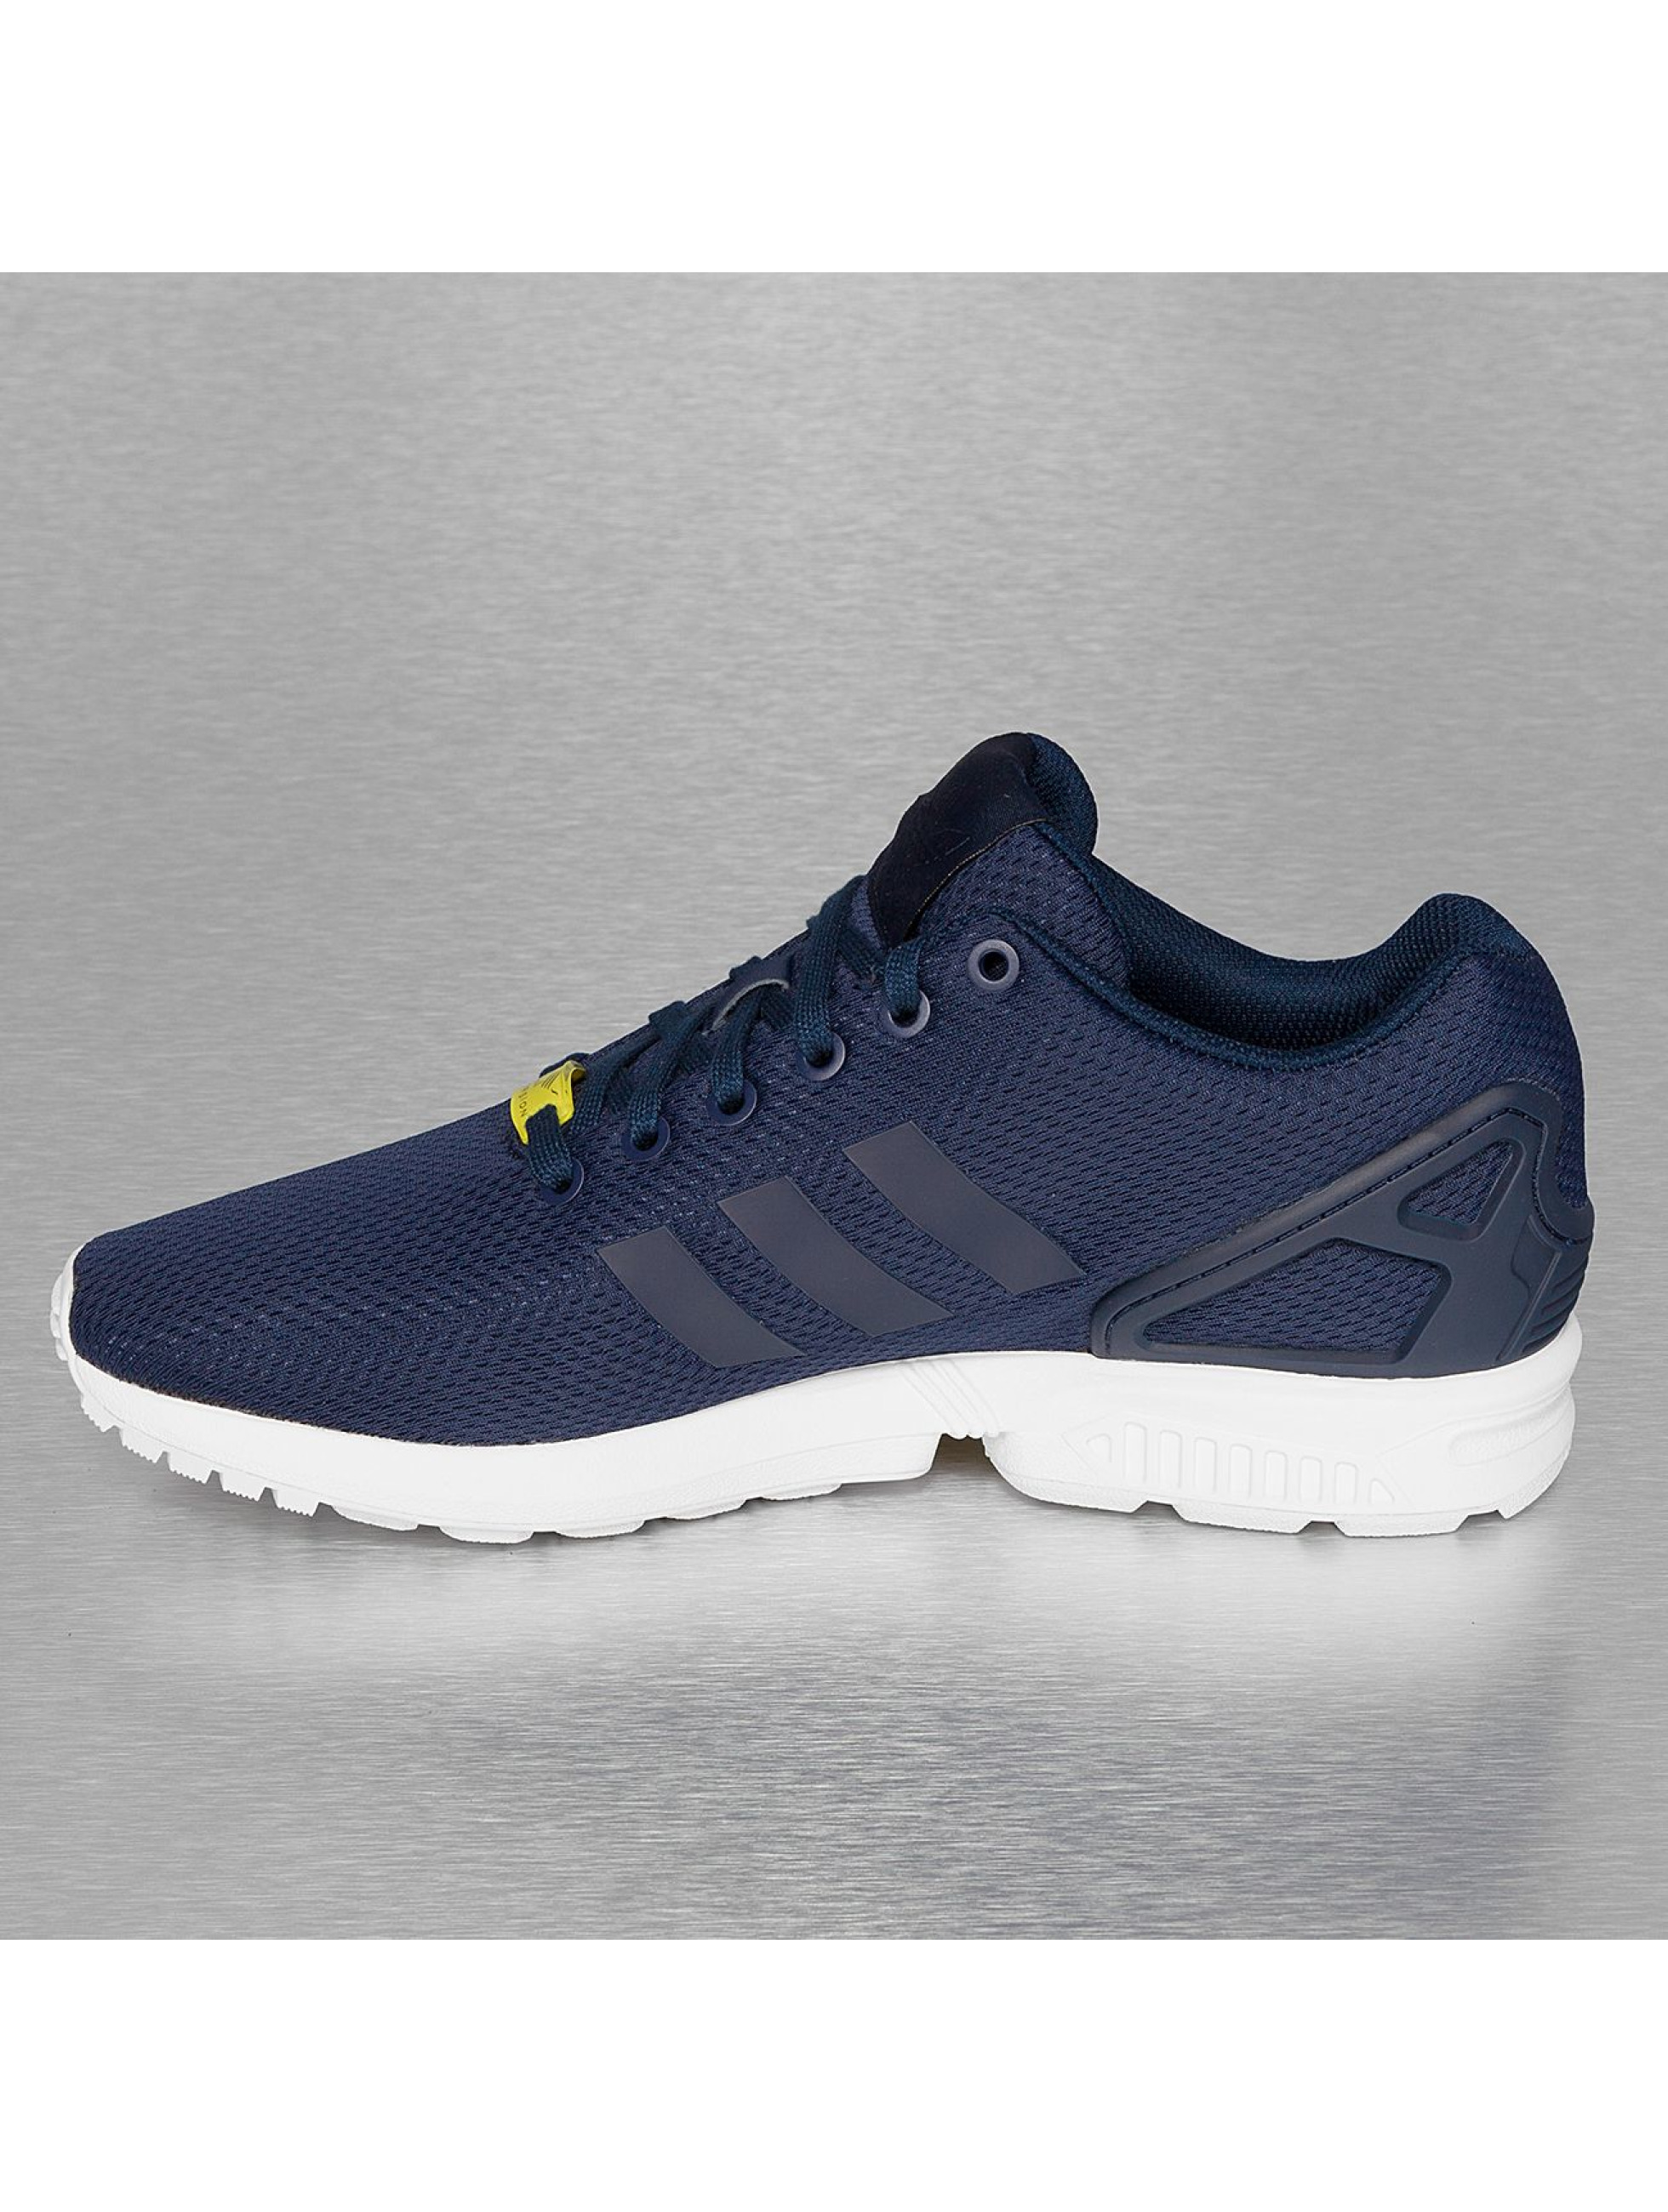 adidas zx flux blau herren renomax. Black Bedroom Furniture Sets. Home Design Ideas